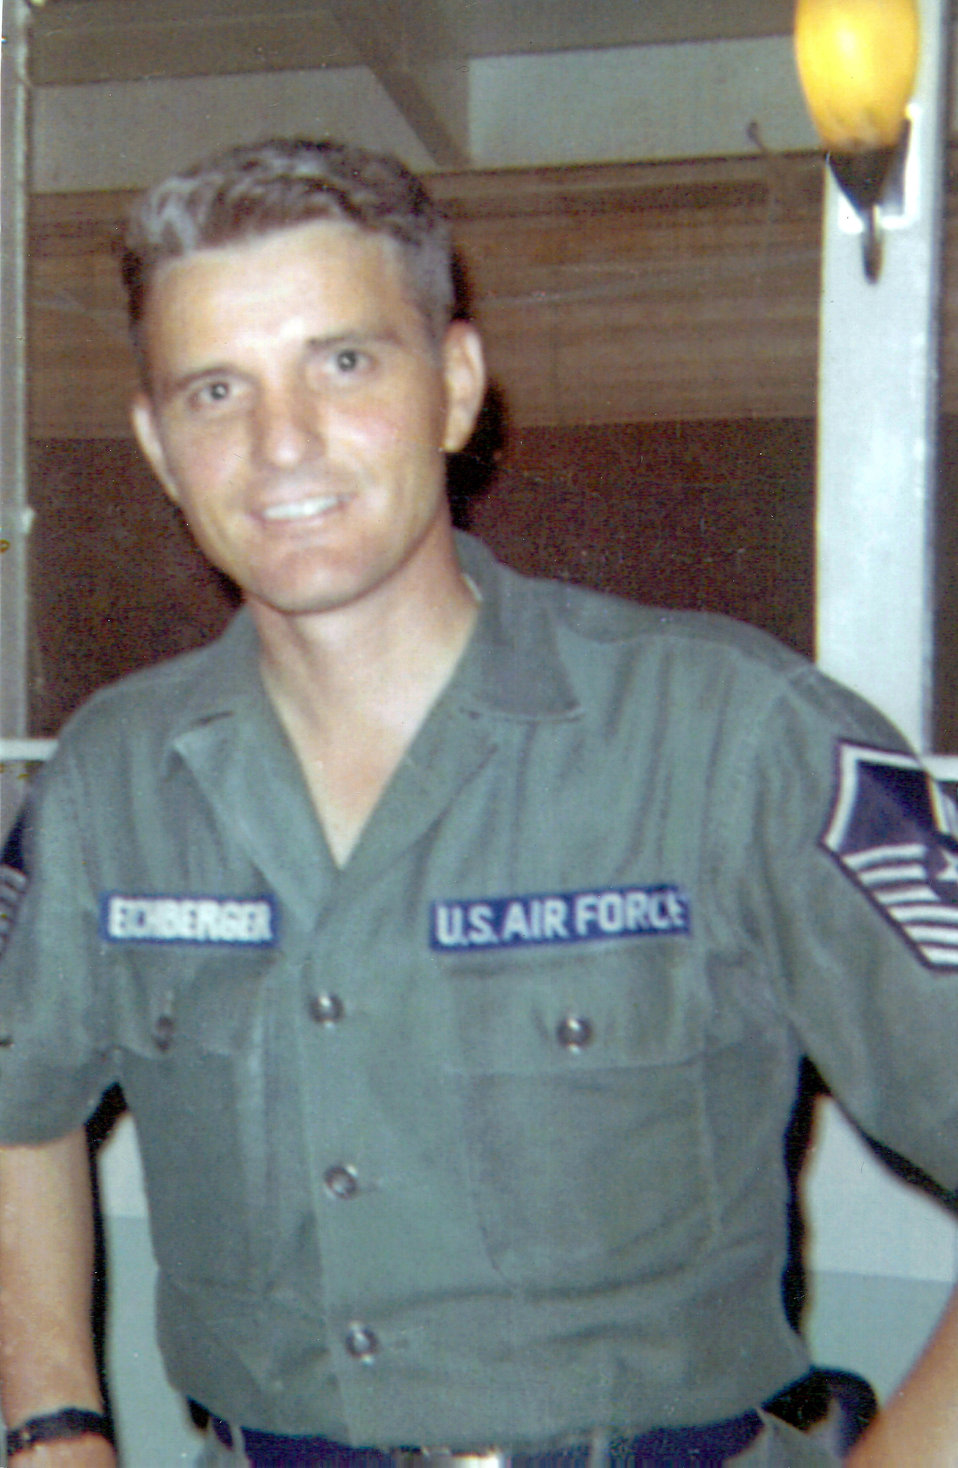 Airman to receive Medal of Honor for '68 actions